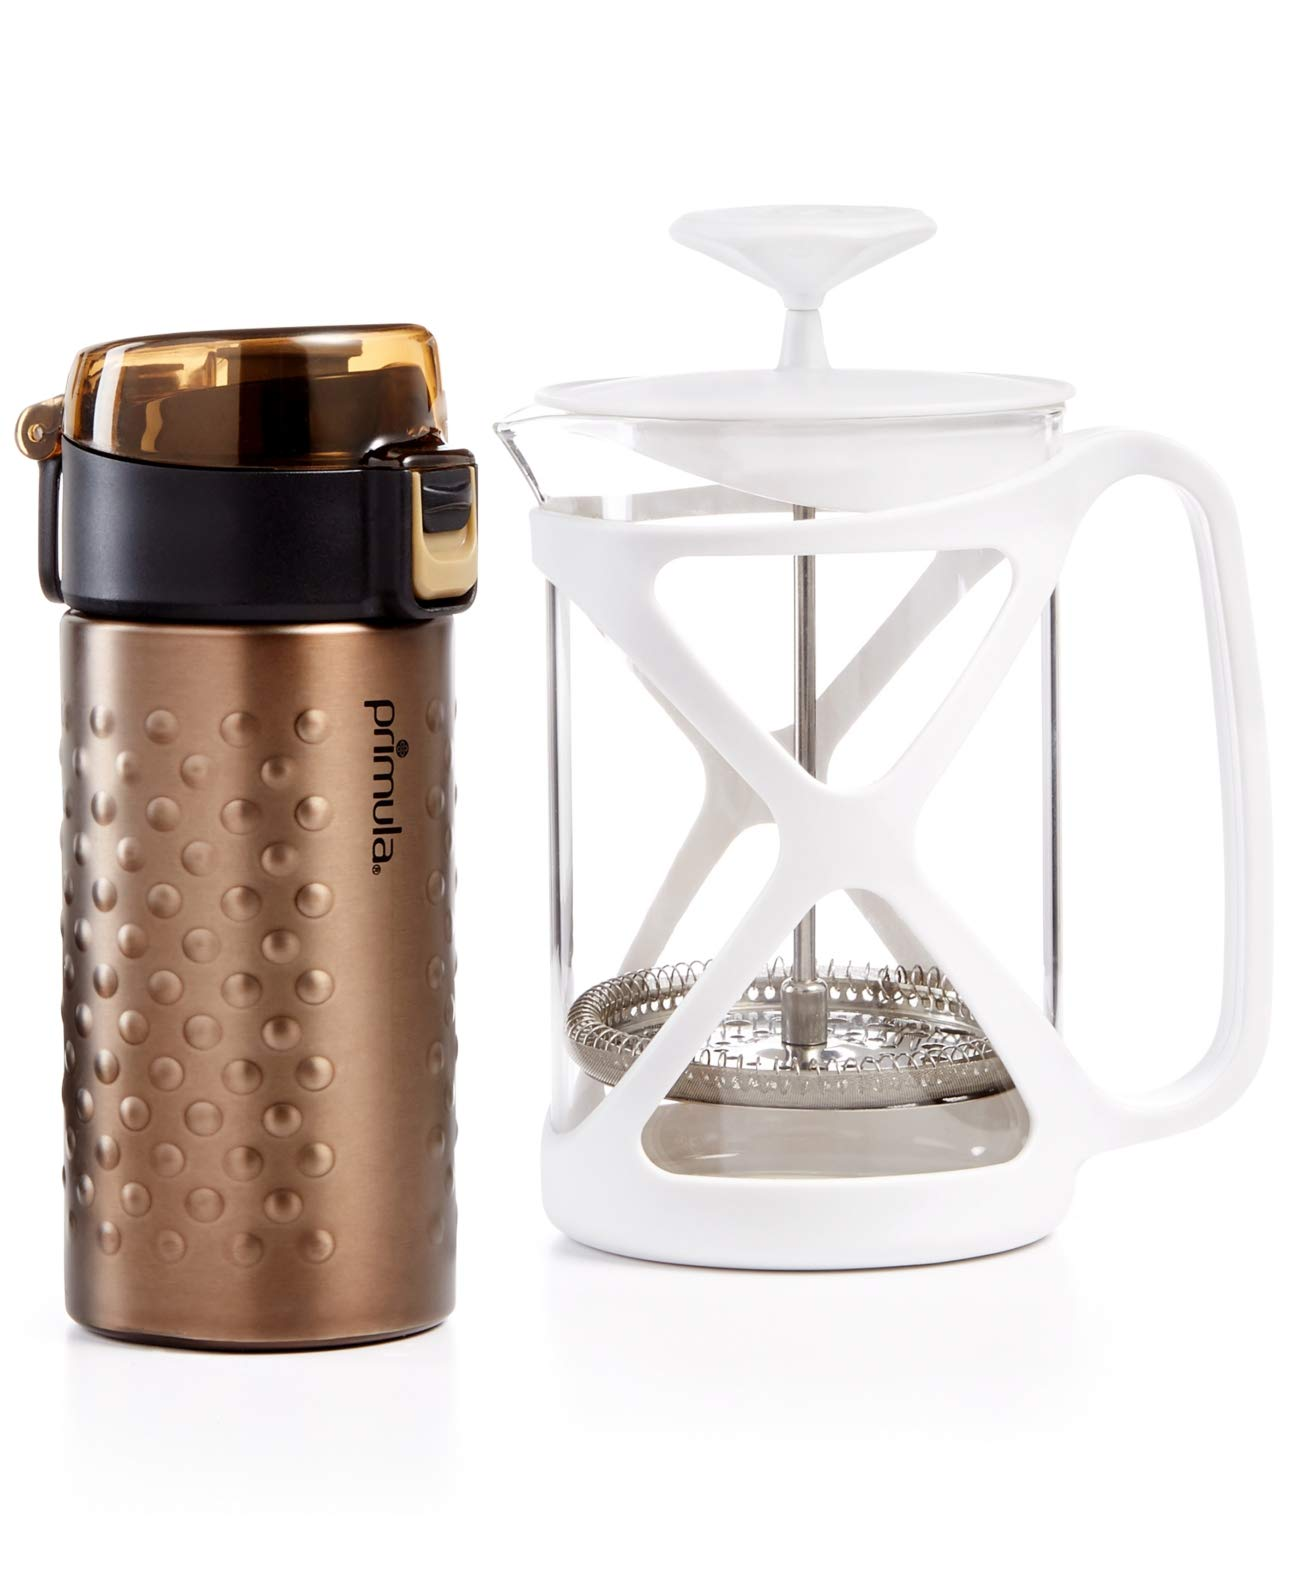 Primula Coffee Brew & Go Set 12oz Thermal Tumbler and 6 Cup Coffee Press, Bronze